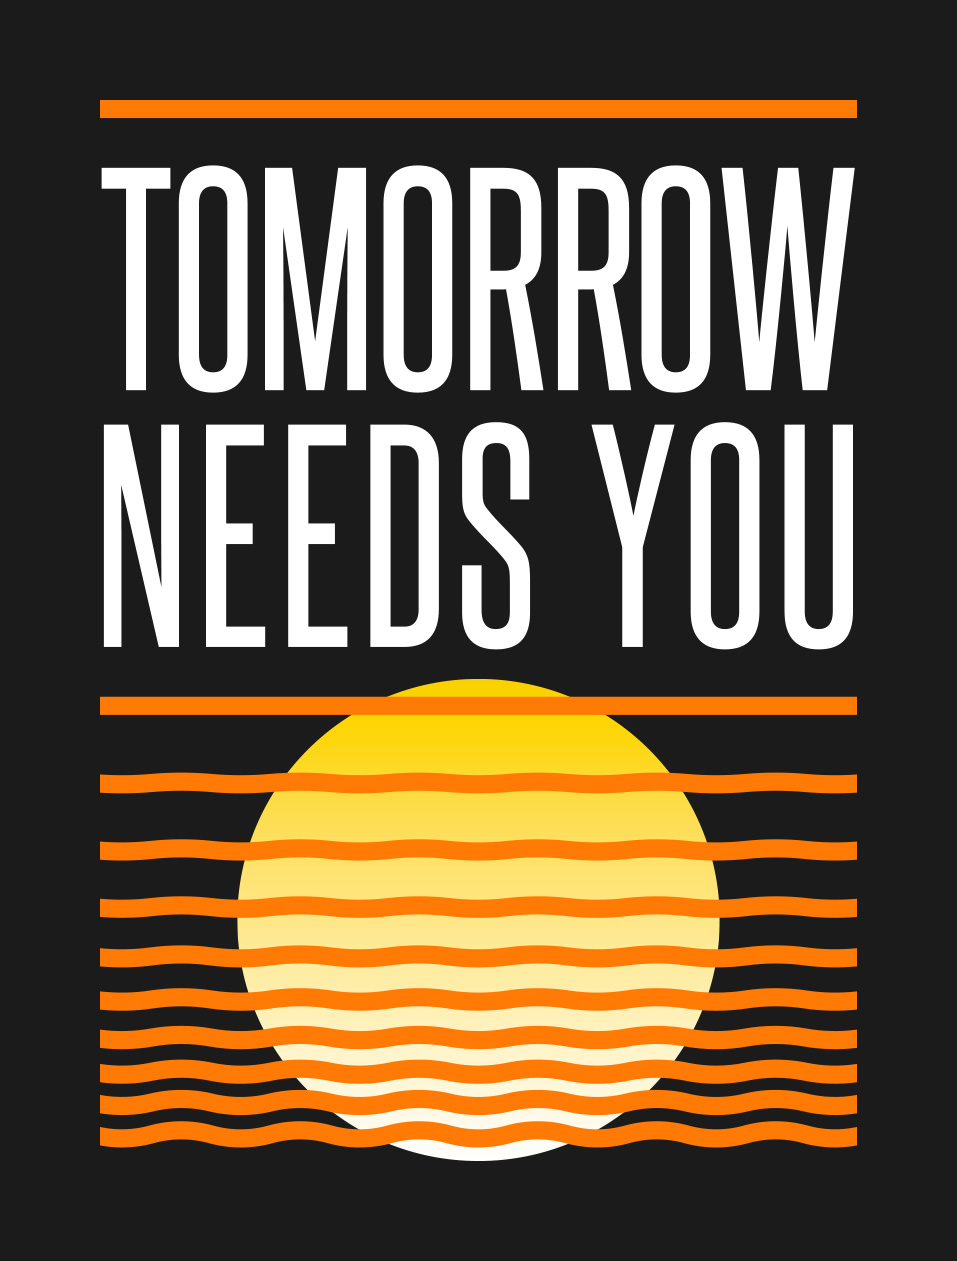 World Suicide Prevention Day 2018: Tomorrow Needs You – TWLOHA